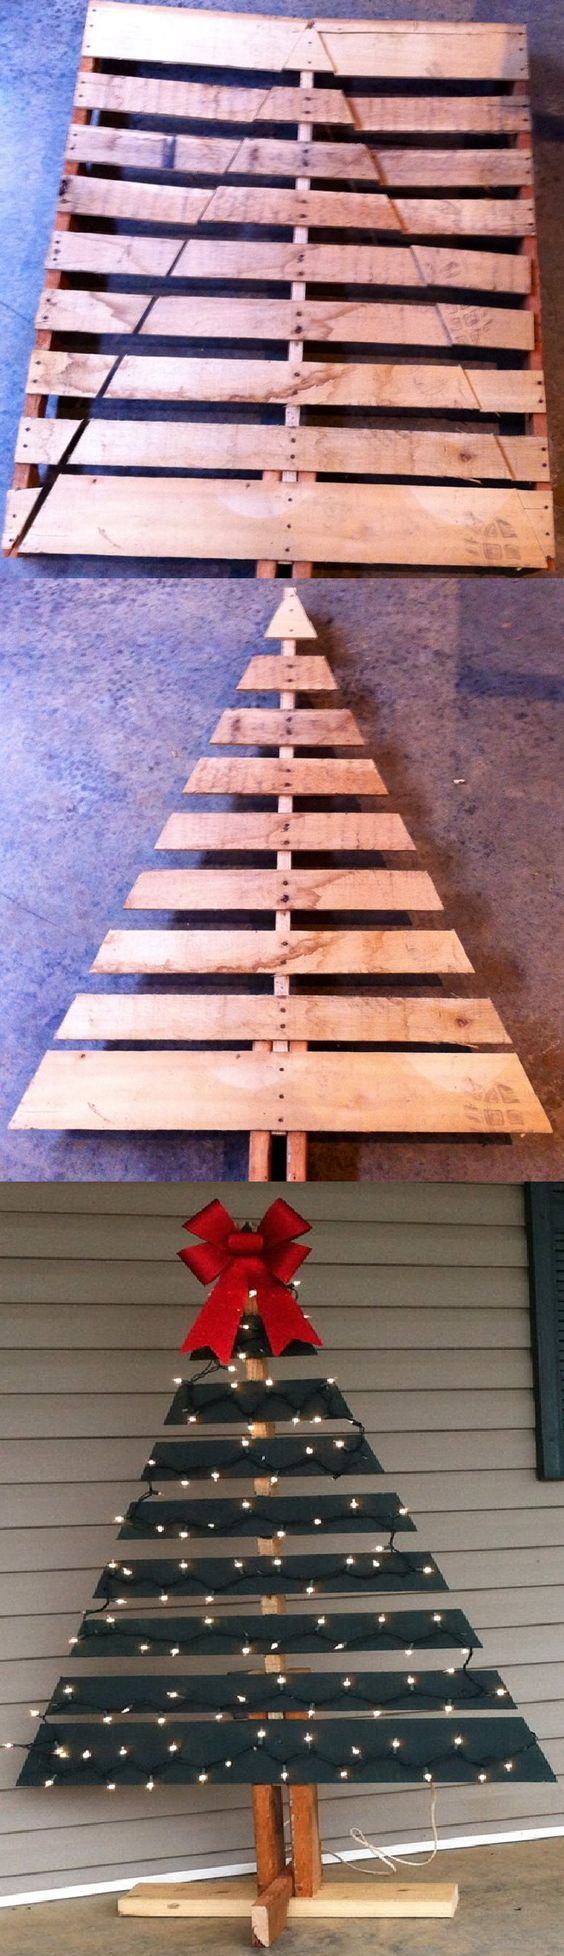 DIY Christmas Tree for Your Front Porch out of a Pallet.